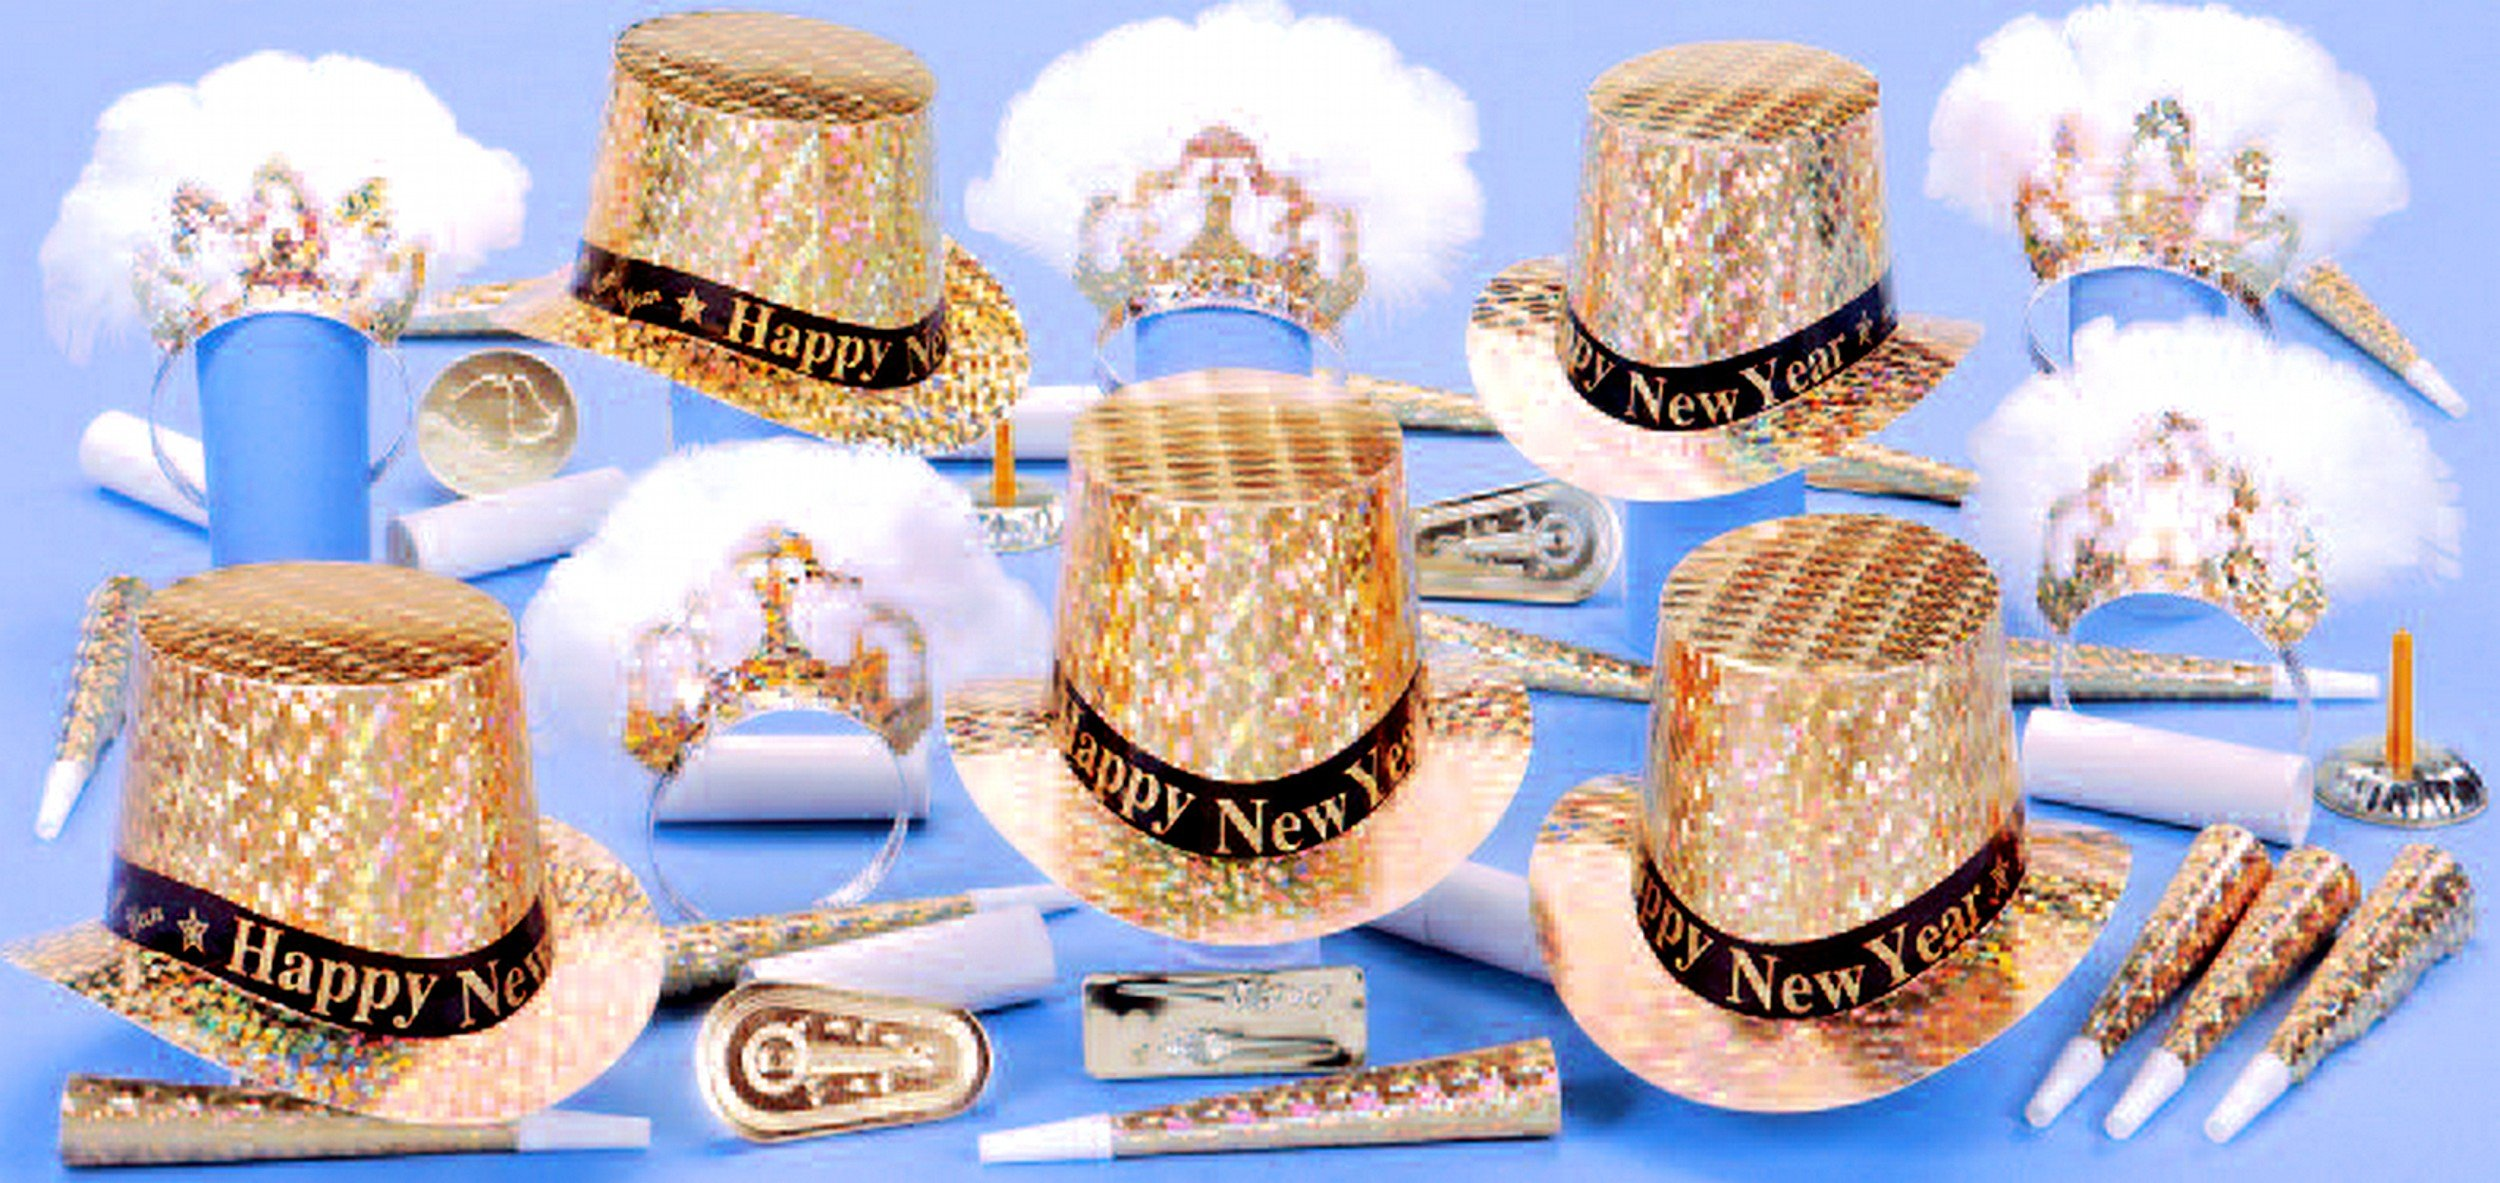 Regency Party Kit W/ Happy New Year Band for 50